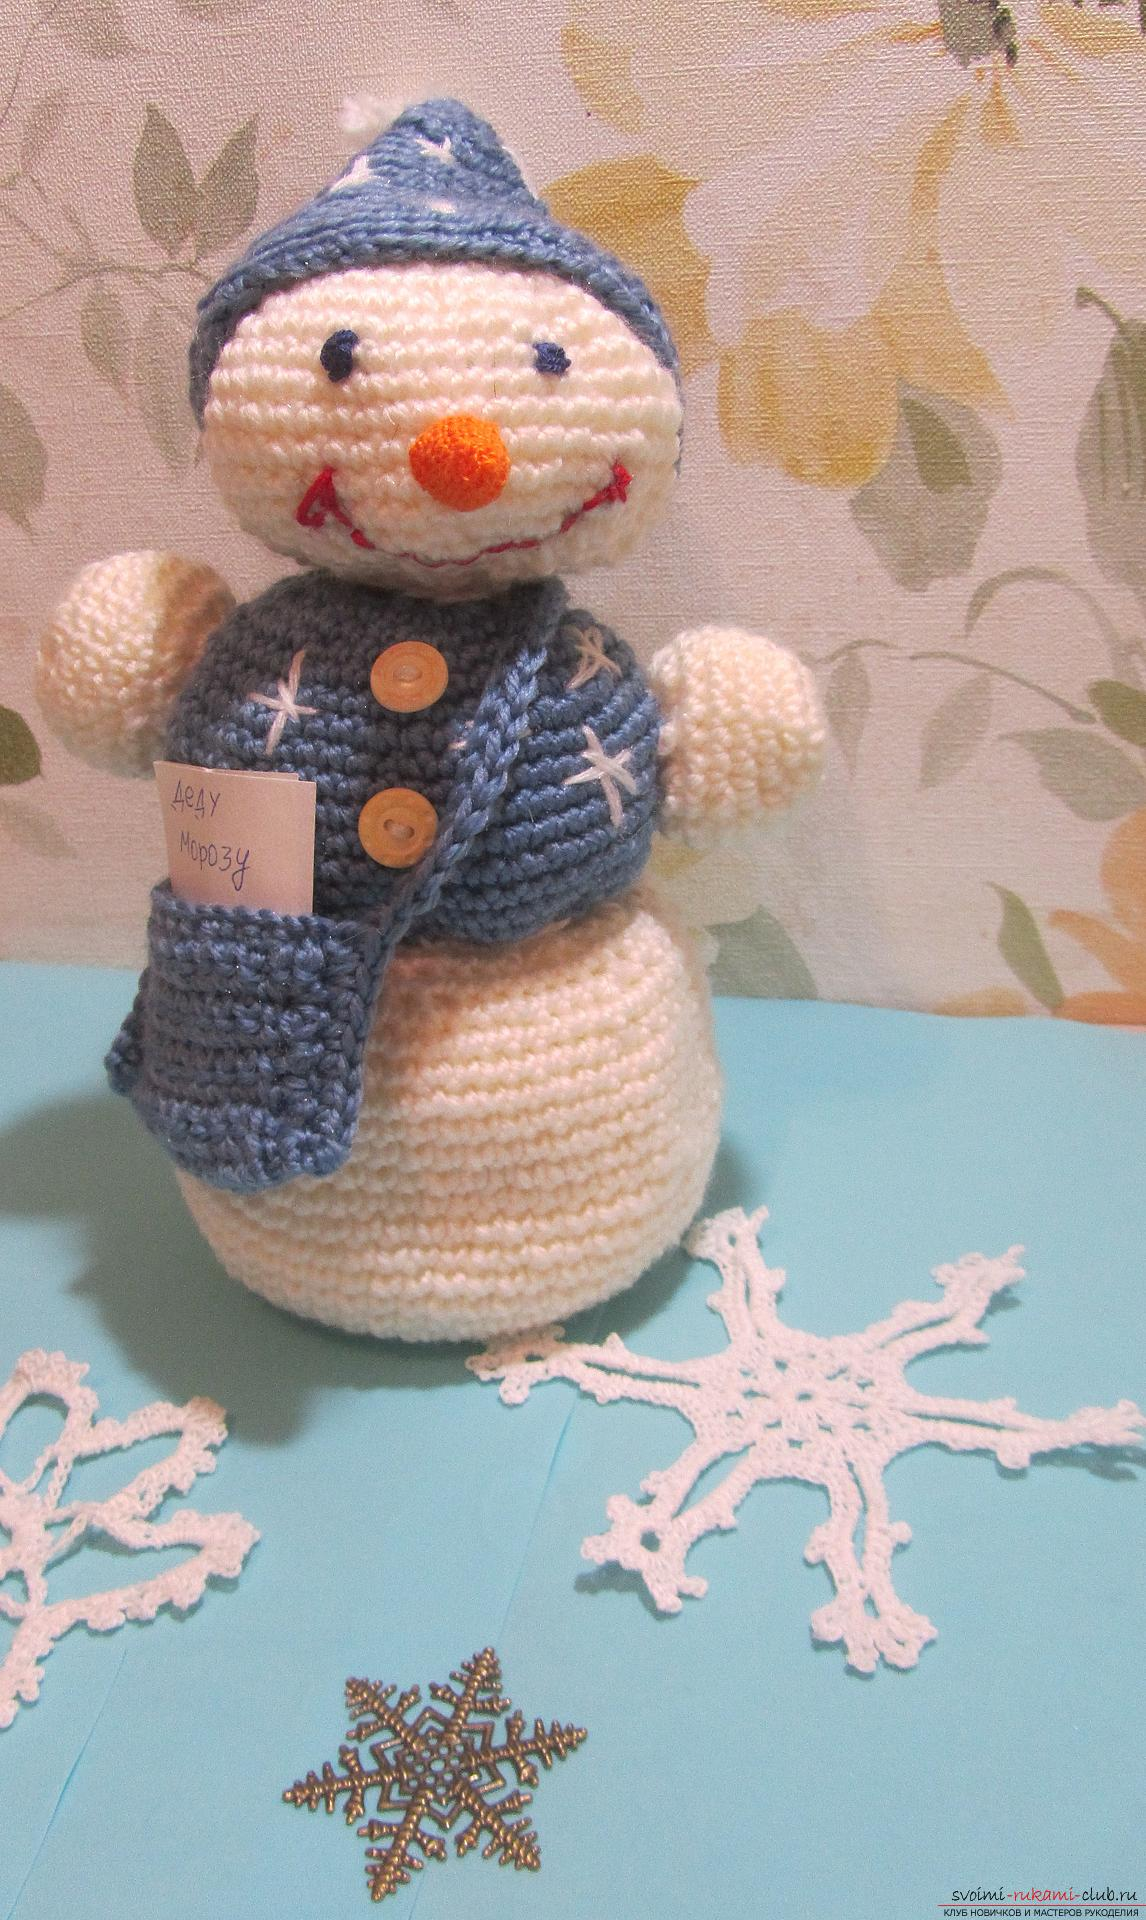 The master class will tell you how to create a New Year's craft - a crocheted snowman Stepu. Photo №1